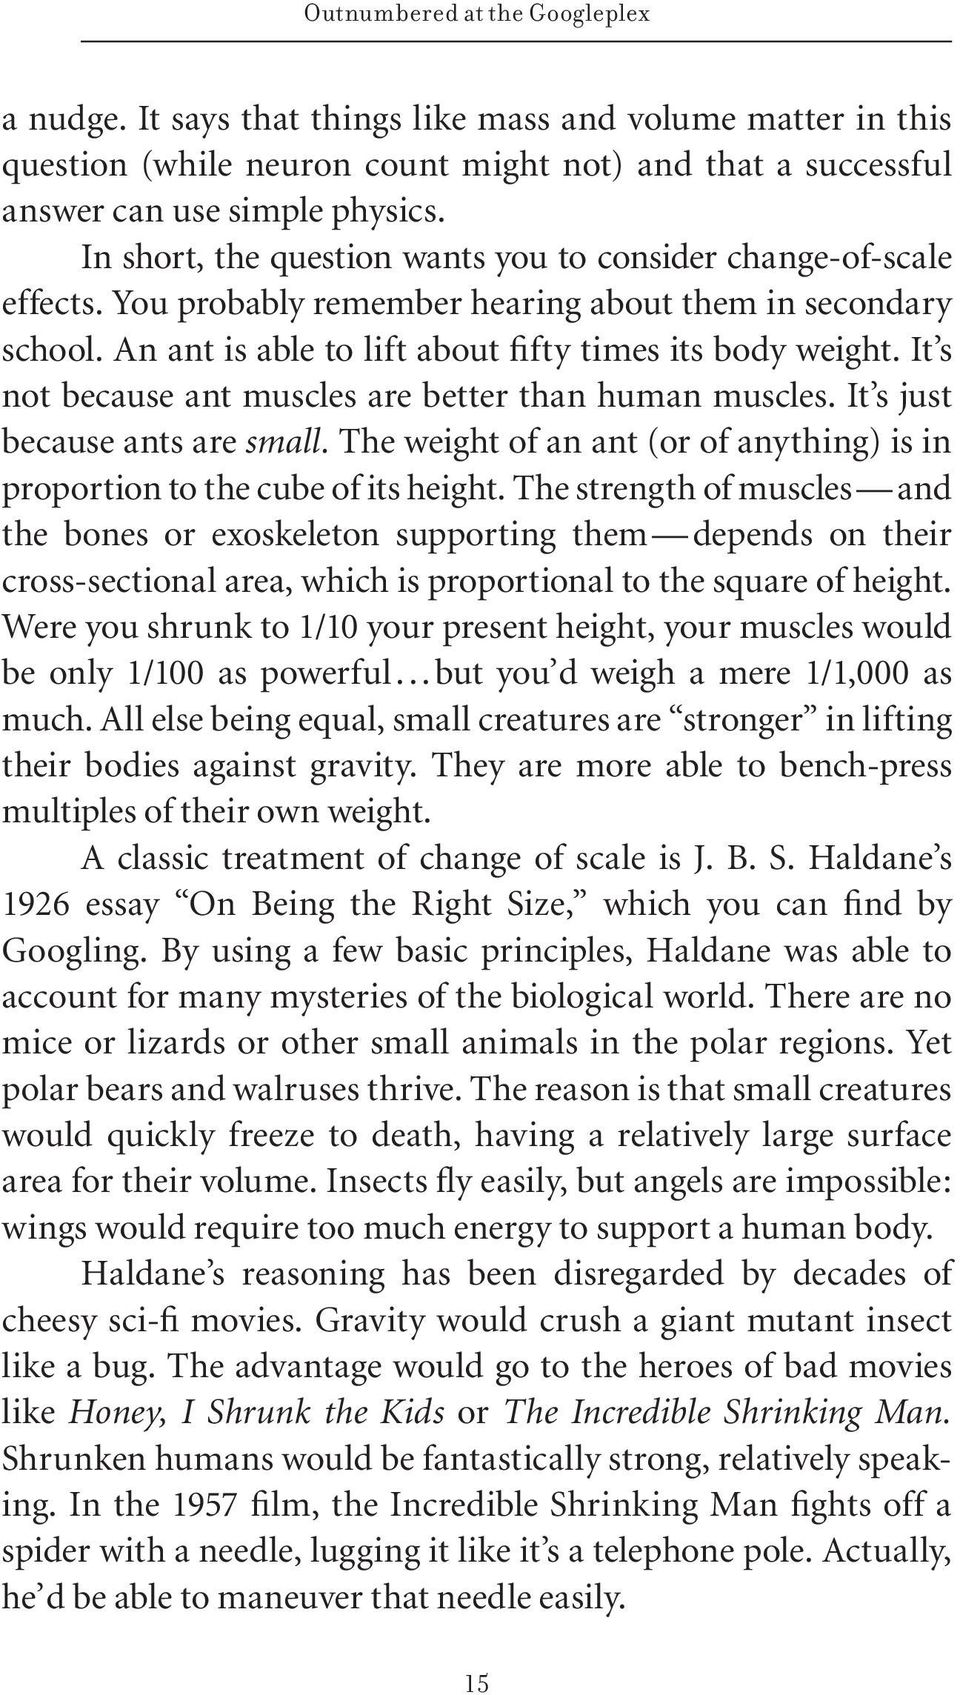 It s not because ant muscles are better than human muscles. It s just because ants are small. The weight of an ant (or of anything) is in proportion to the cube of its height.